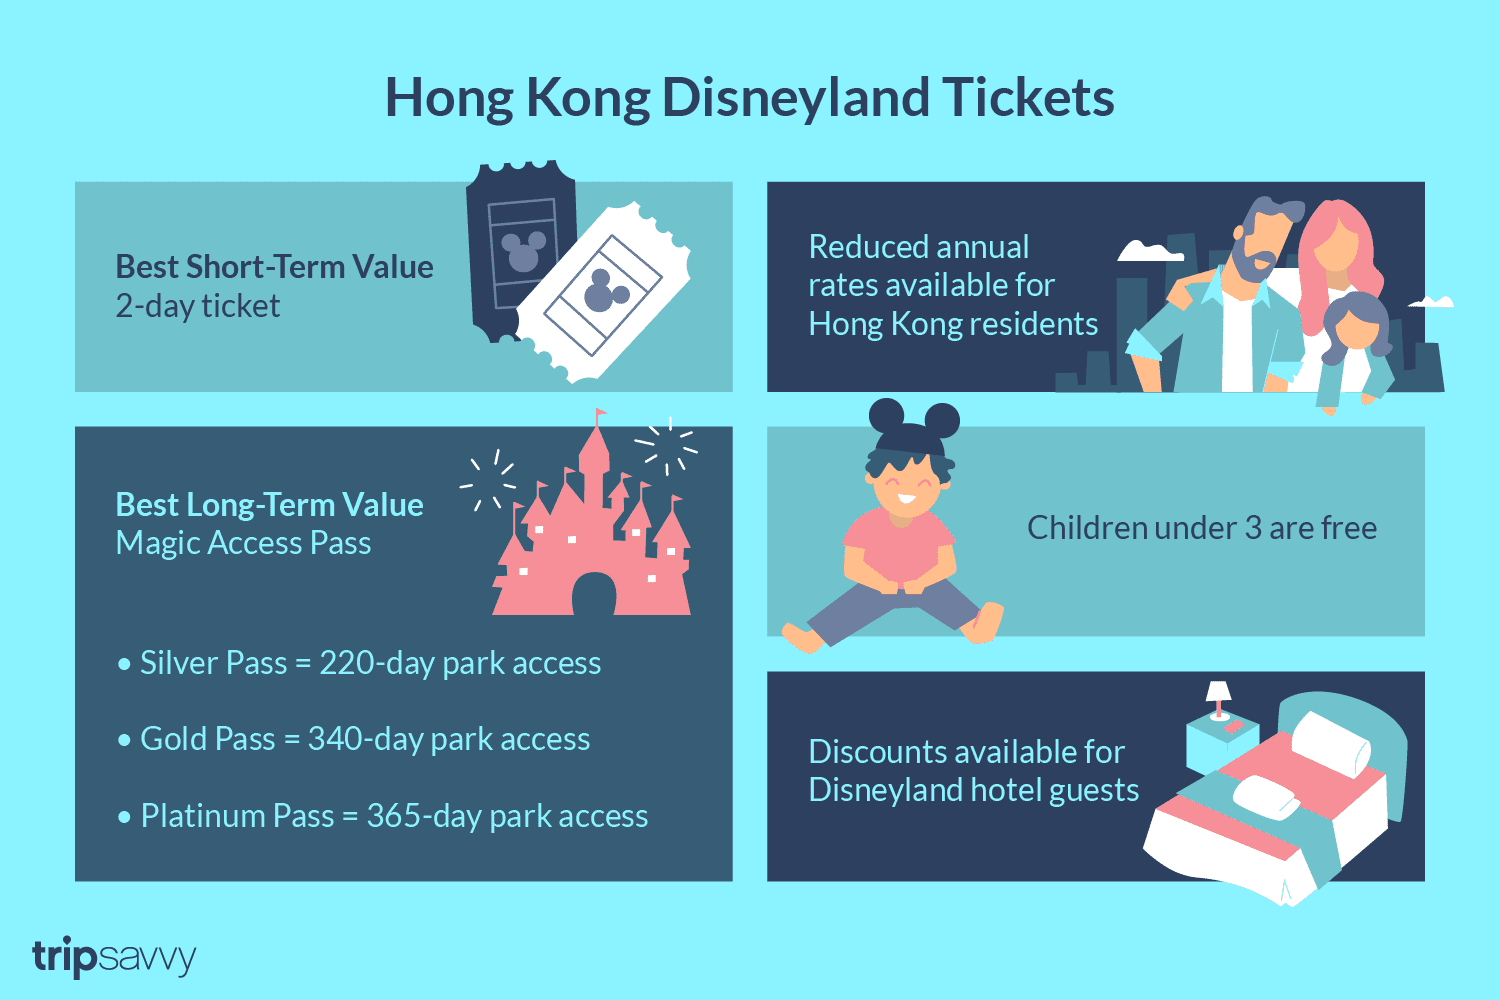 Where to Get Discounts on Hong Kong Disneyland Ticket Prices